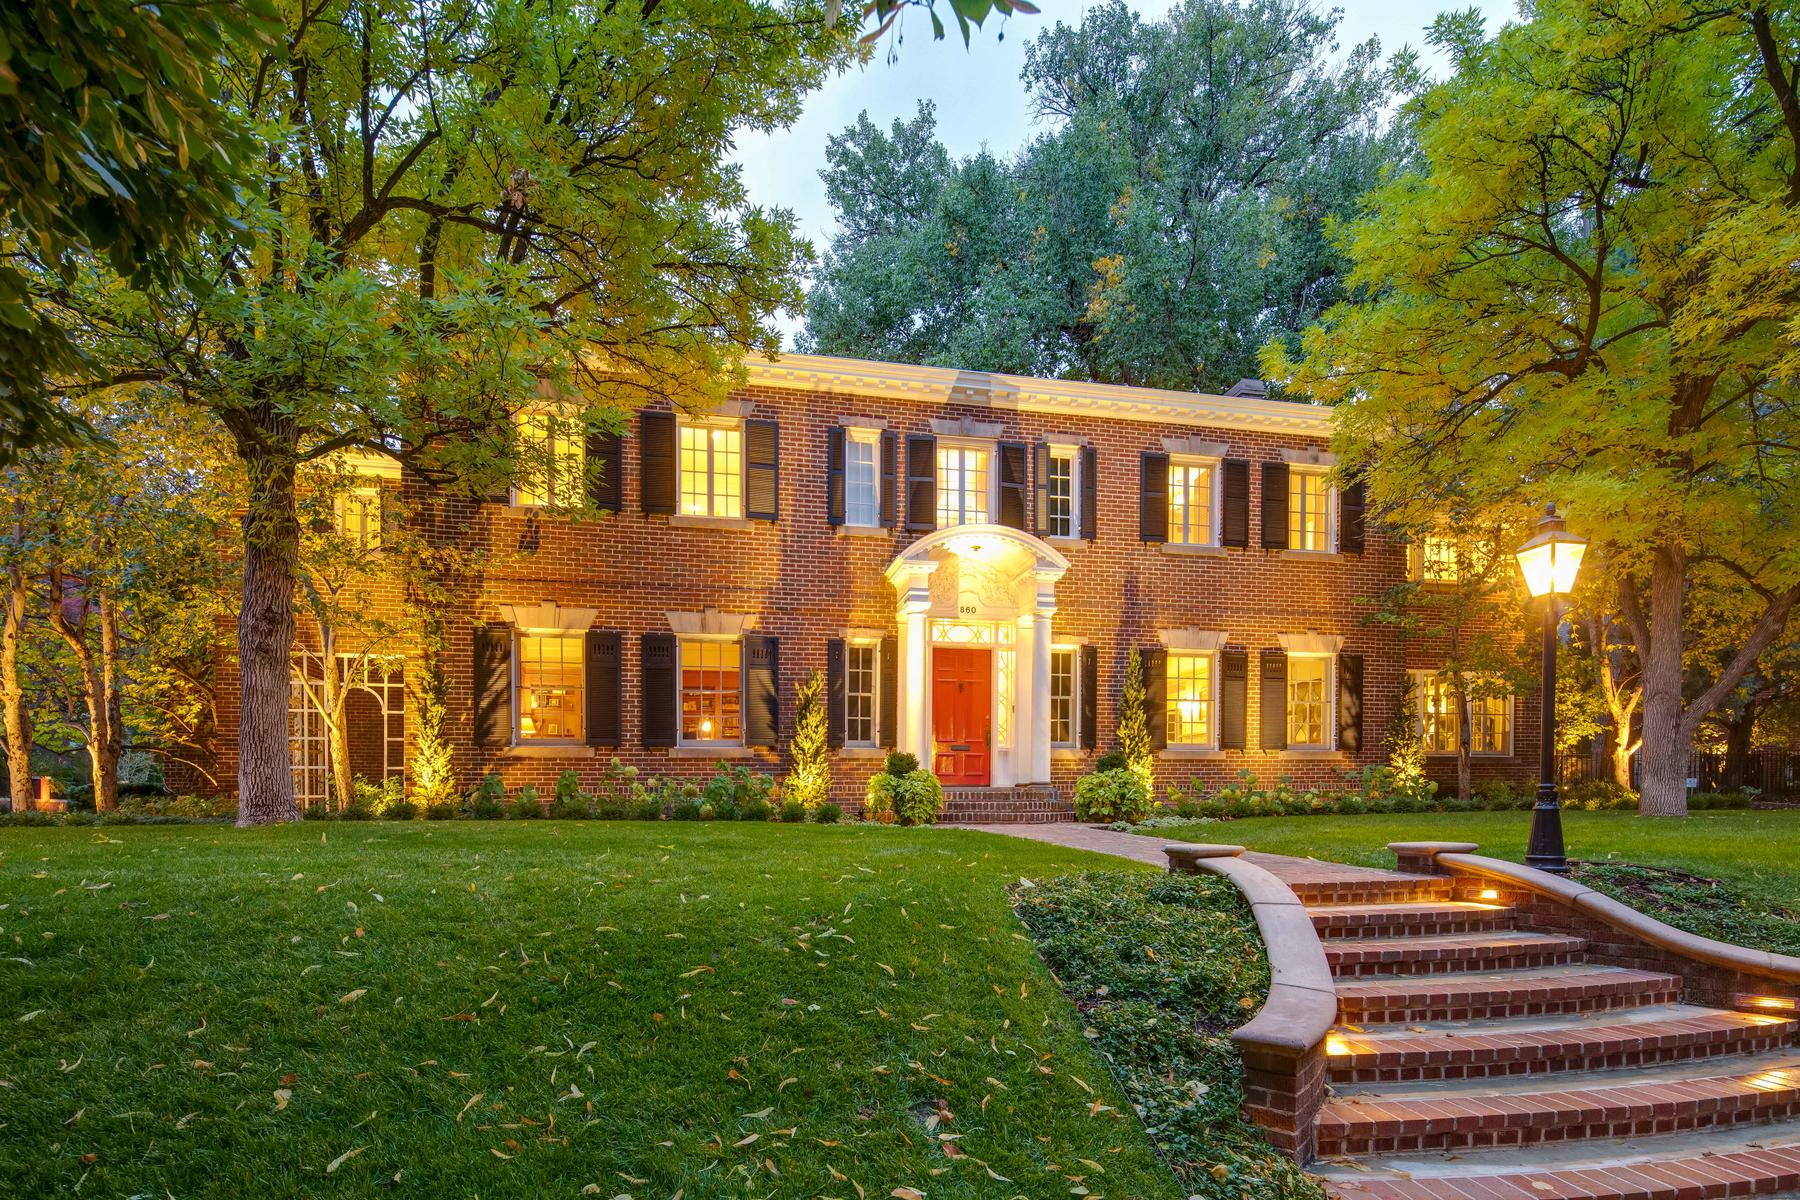 Additional photo for property listing at Elegant Georgian Estate 860 Vine St Denver, Colorado 80206 United States